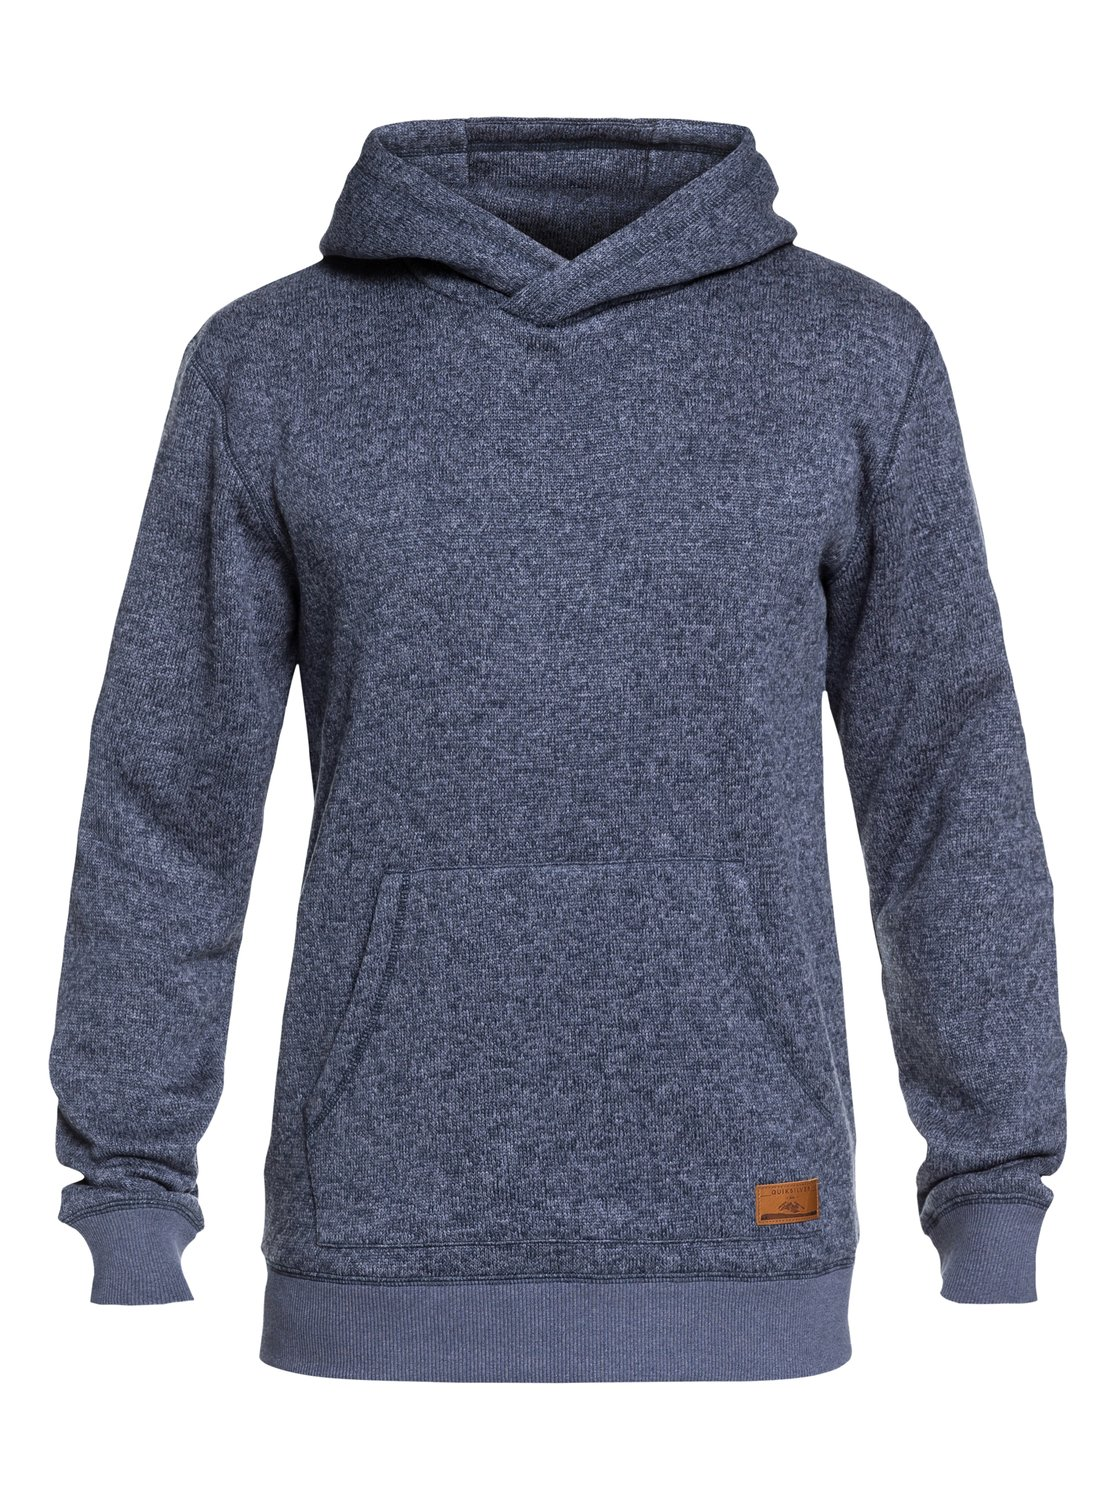 Polar Fleece Bettwäsche Keller Polar Fleece Hoodie Eqyft03836 | Quiksilver